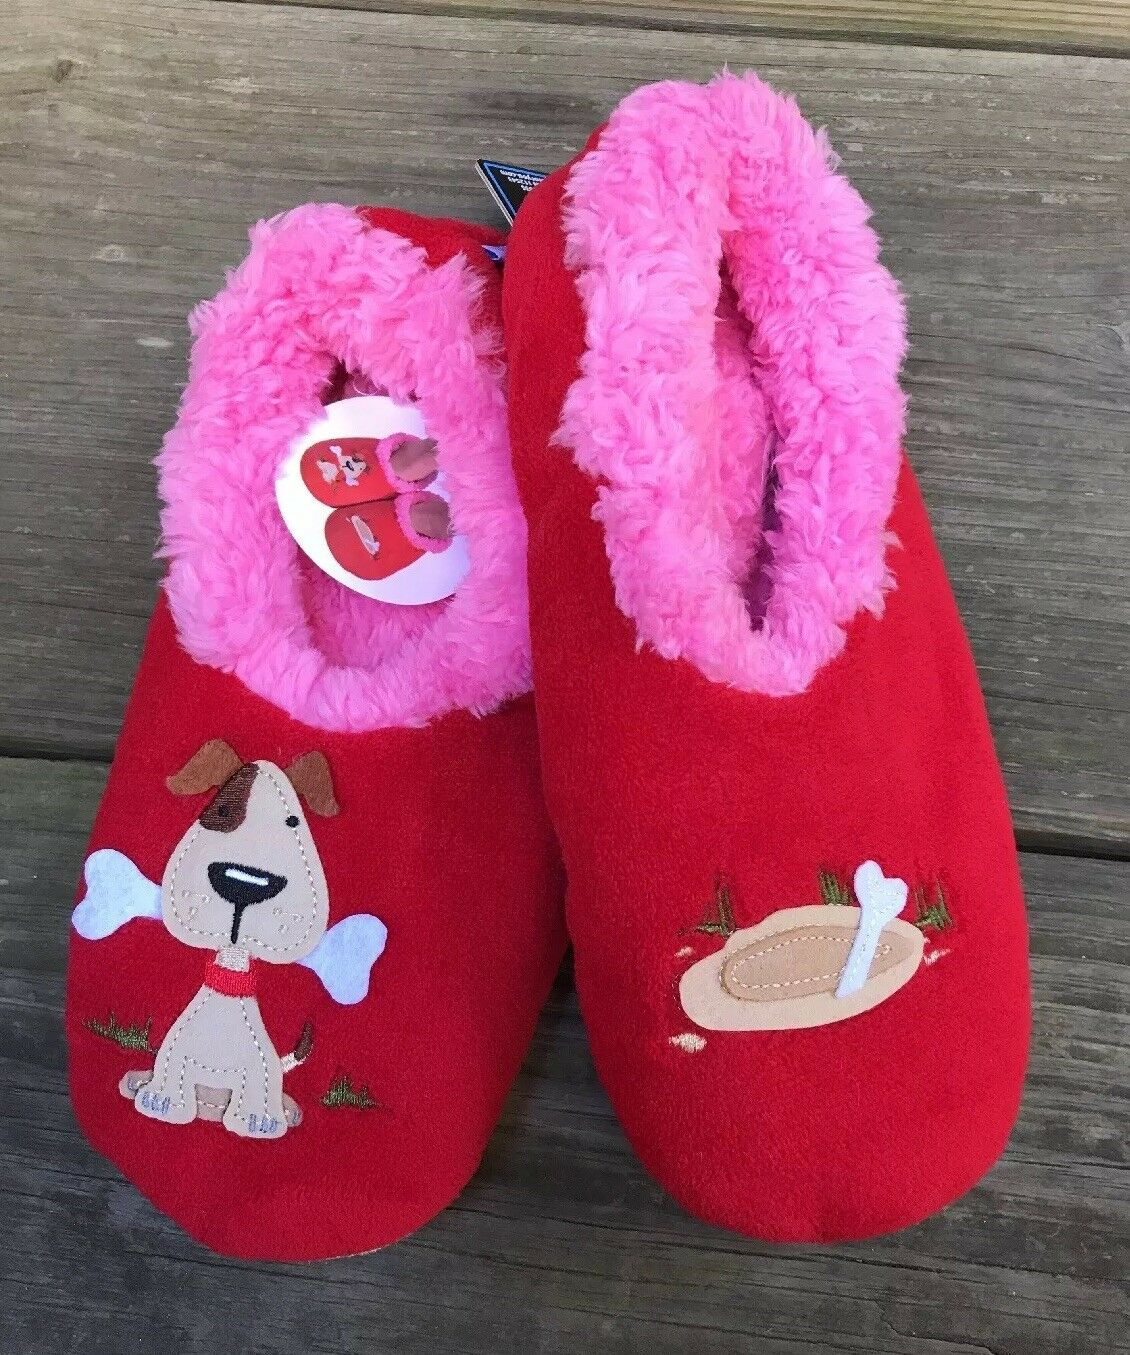 L 9-10 Snoozies Red Dog With Bone Soft Slippers Shoes Foot Coverings Women NEW